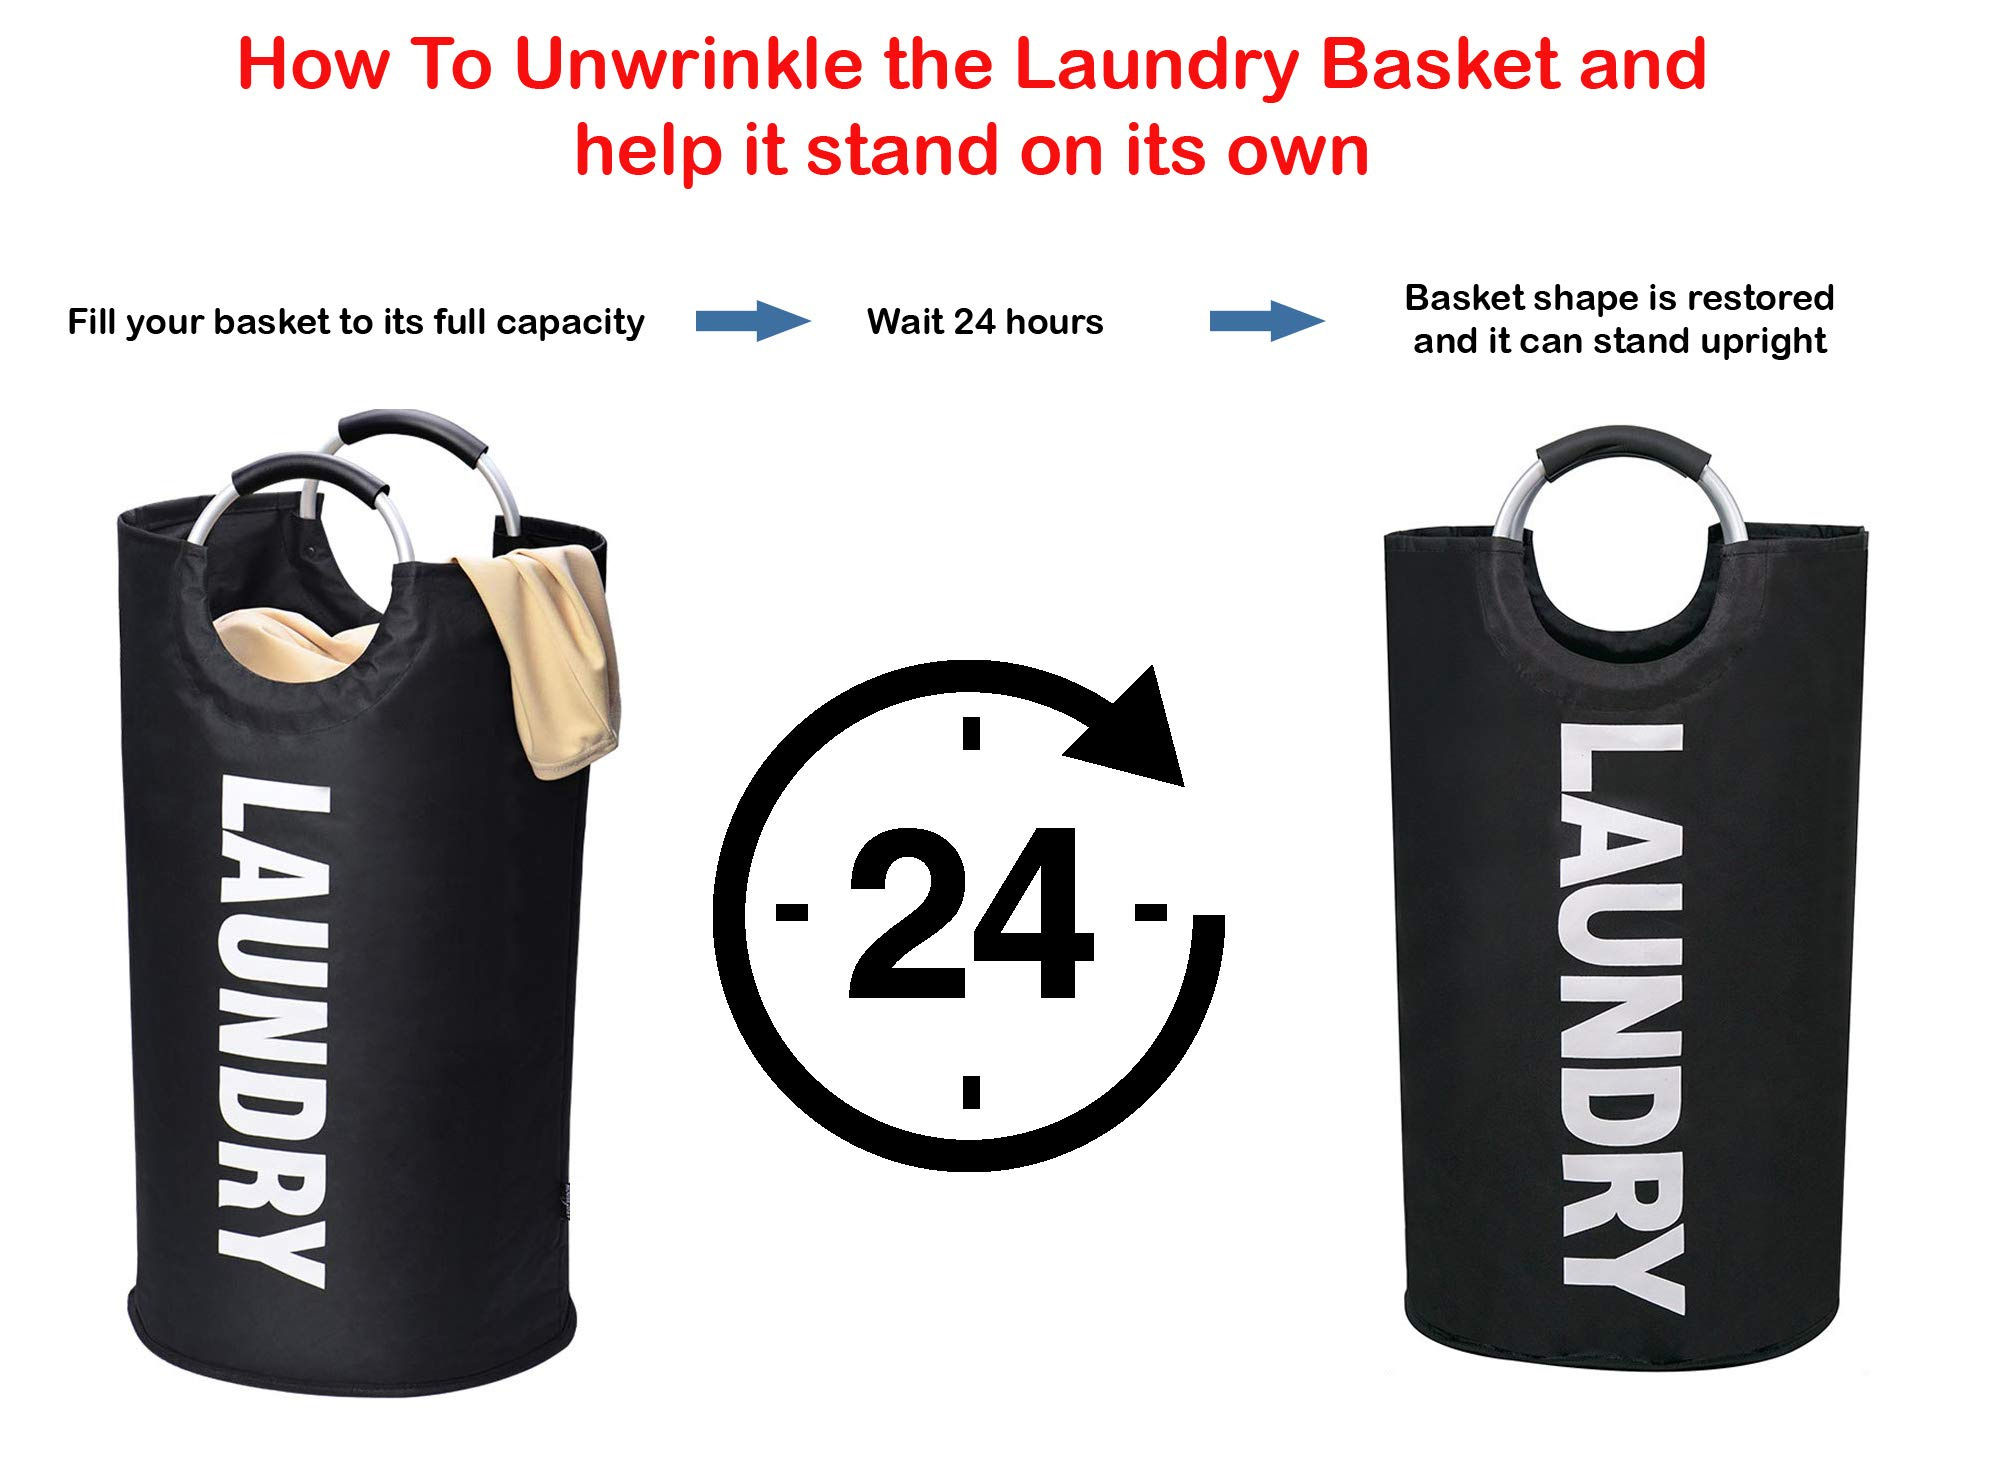 JIANUS Laundry Basket - Collapsible Foldable Clothes Bag Waterproof Portable 82L Large Fabric Laundry Hamper Bags 6 Colors Durable Handles for Bathroom Black Kids Room